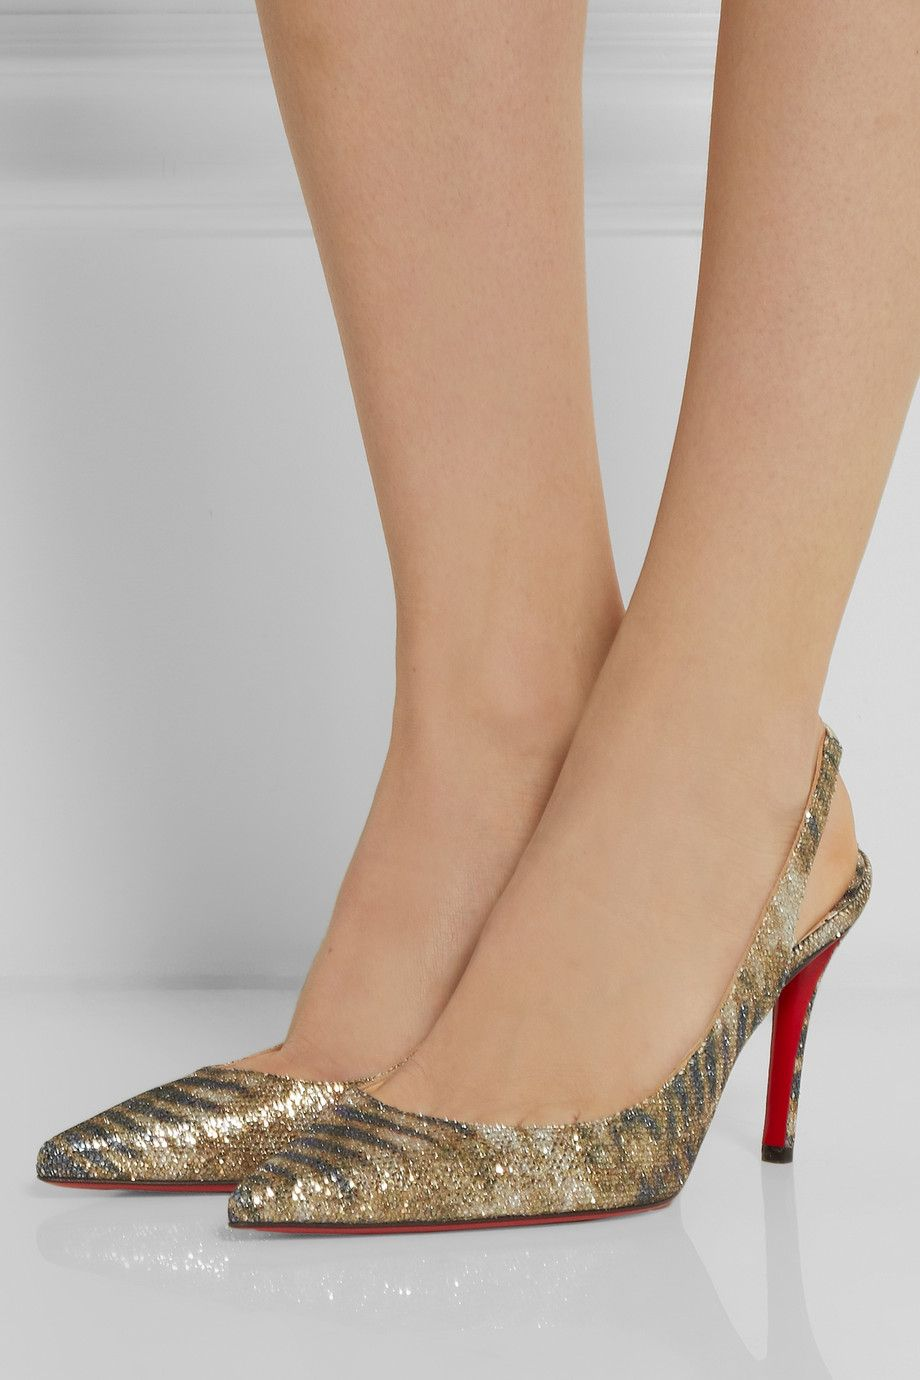 christian louboutin apostrophy 85 printed glitter finished leather slingback pumps